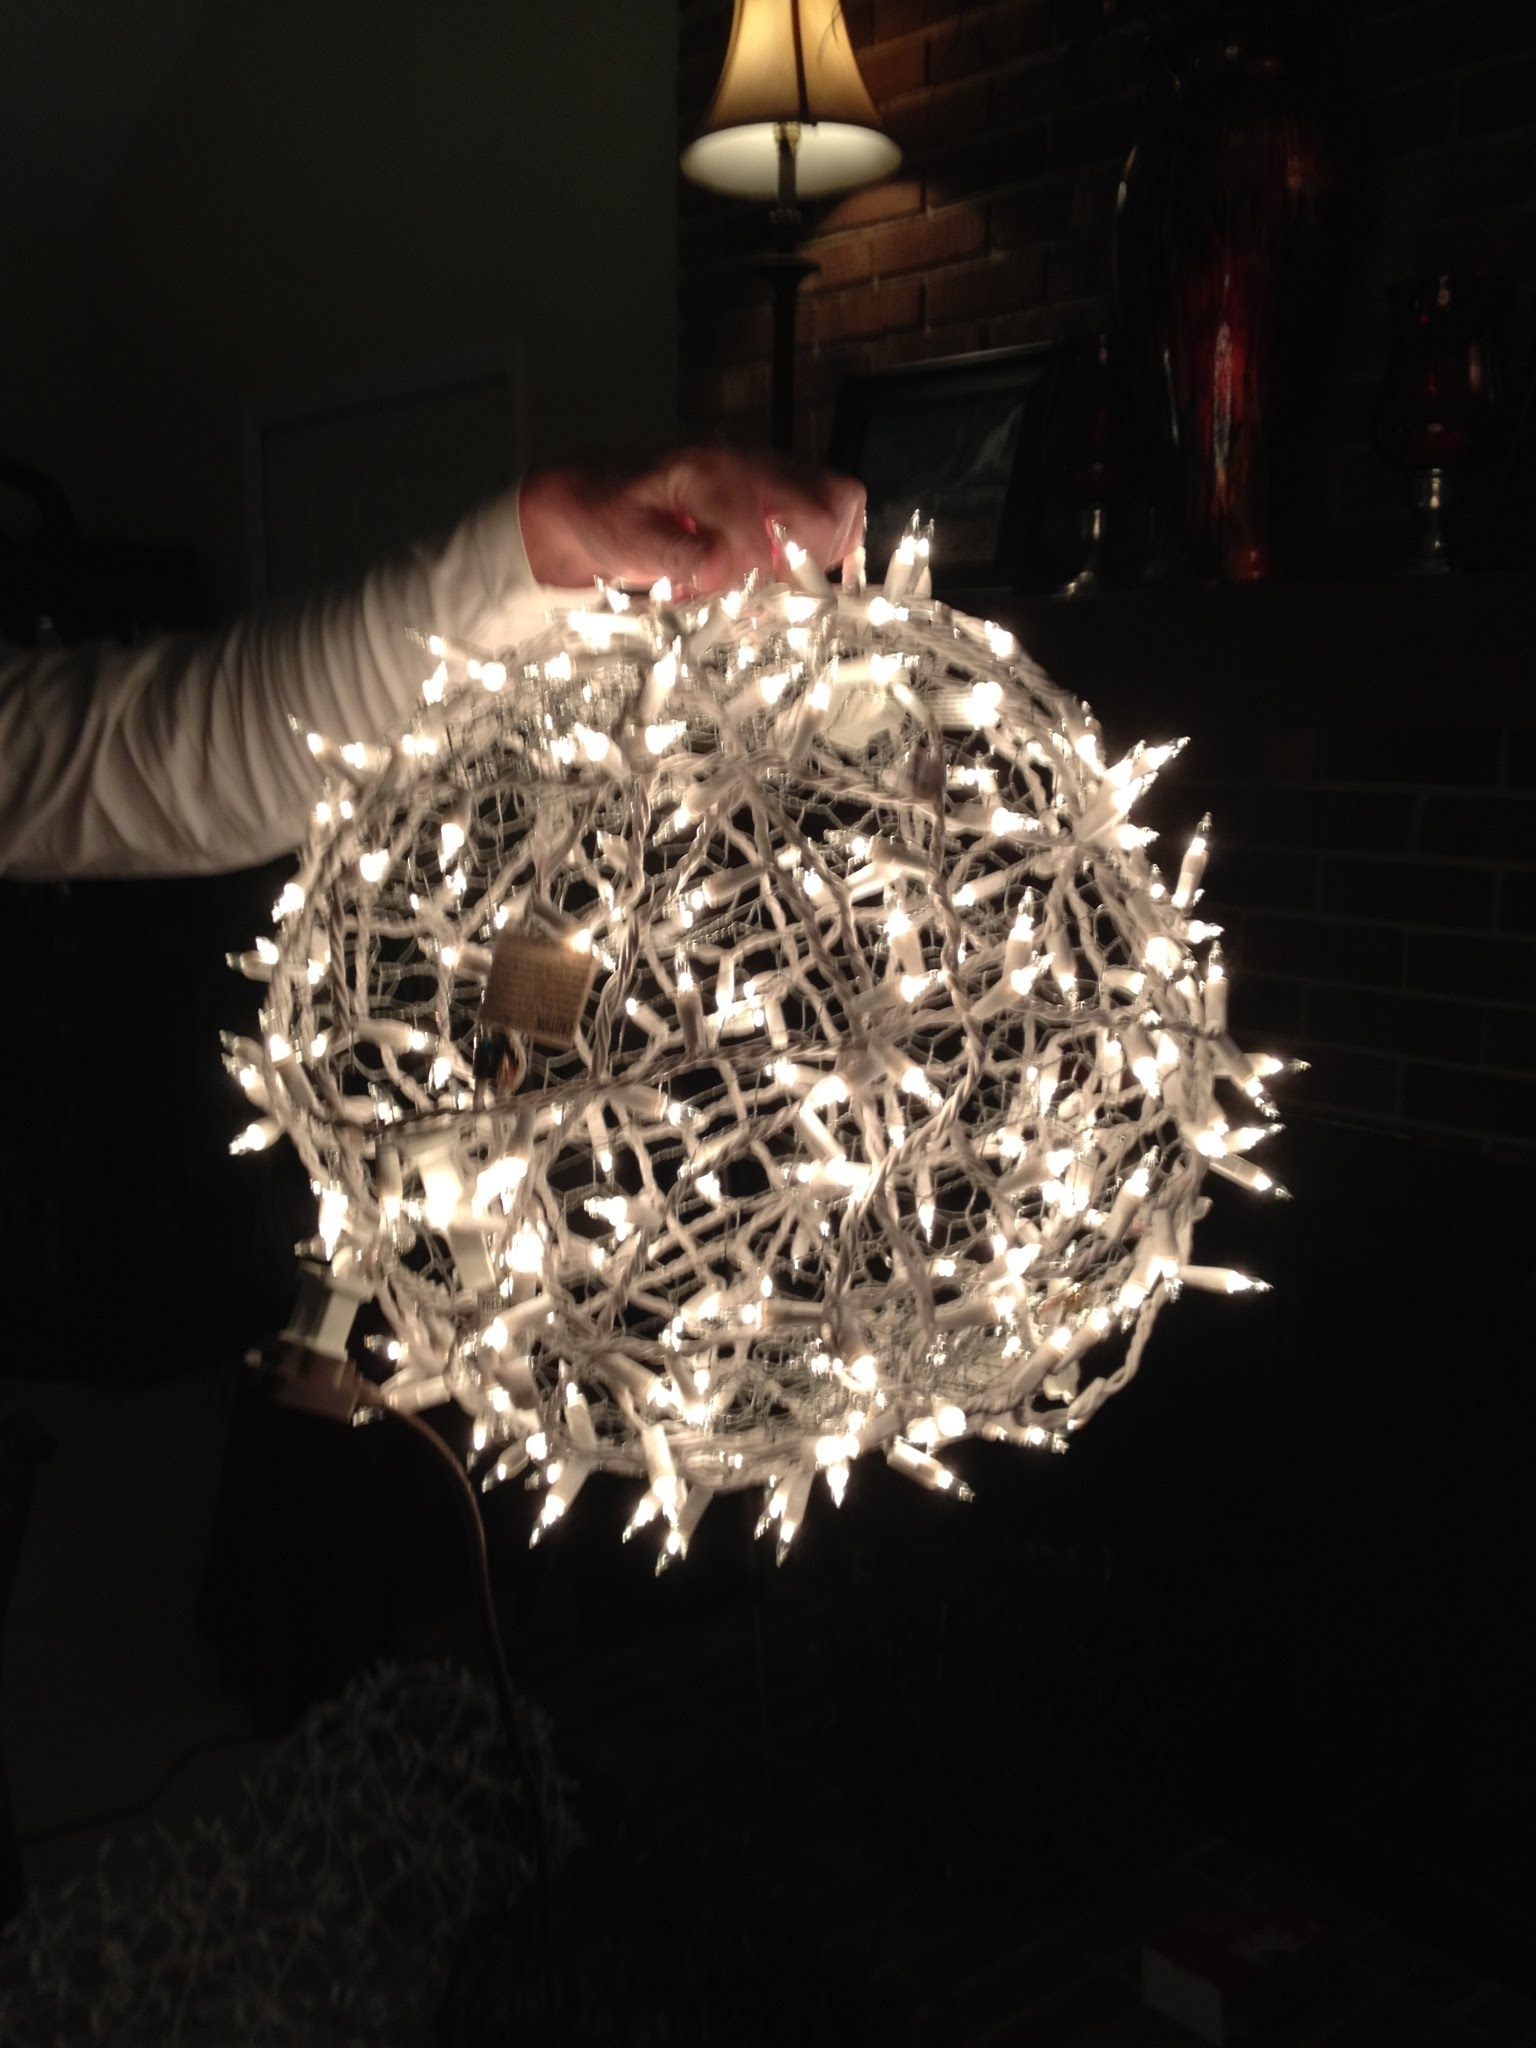 Giant Lighted Christmas Balls - How To Hang Them On A Tree - Youtube intended for Outdoor Xmas Lanterns (Image 9 of 20)